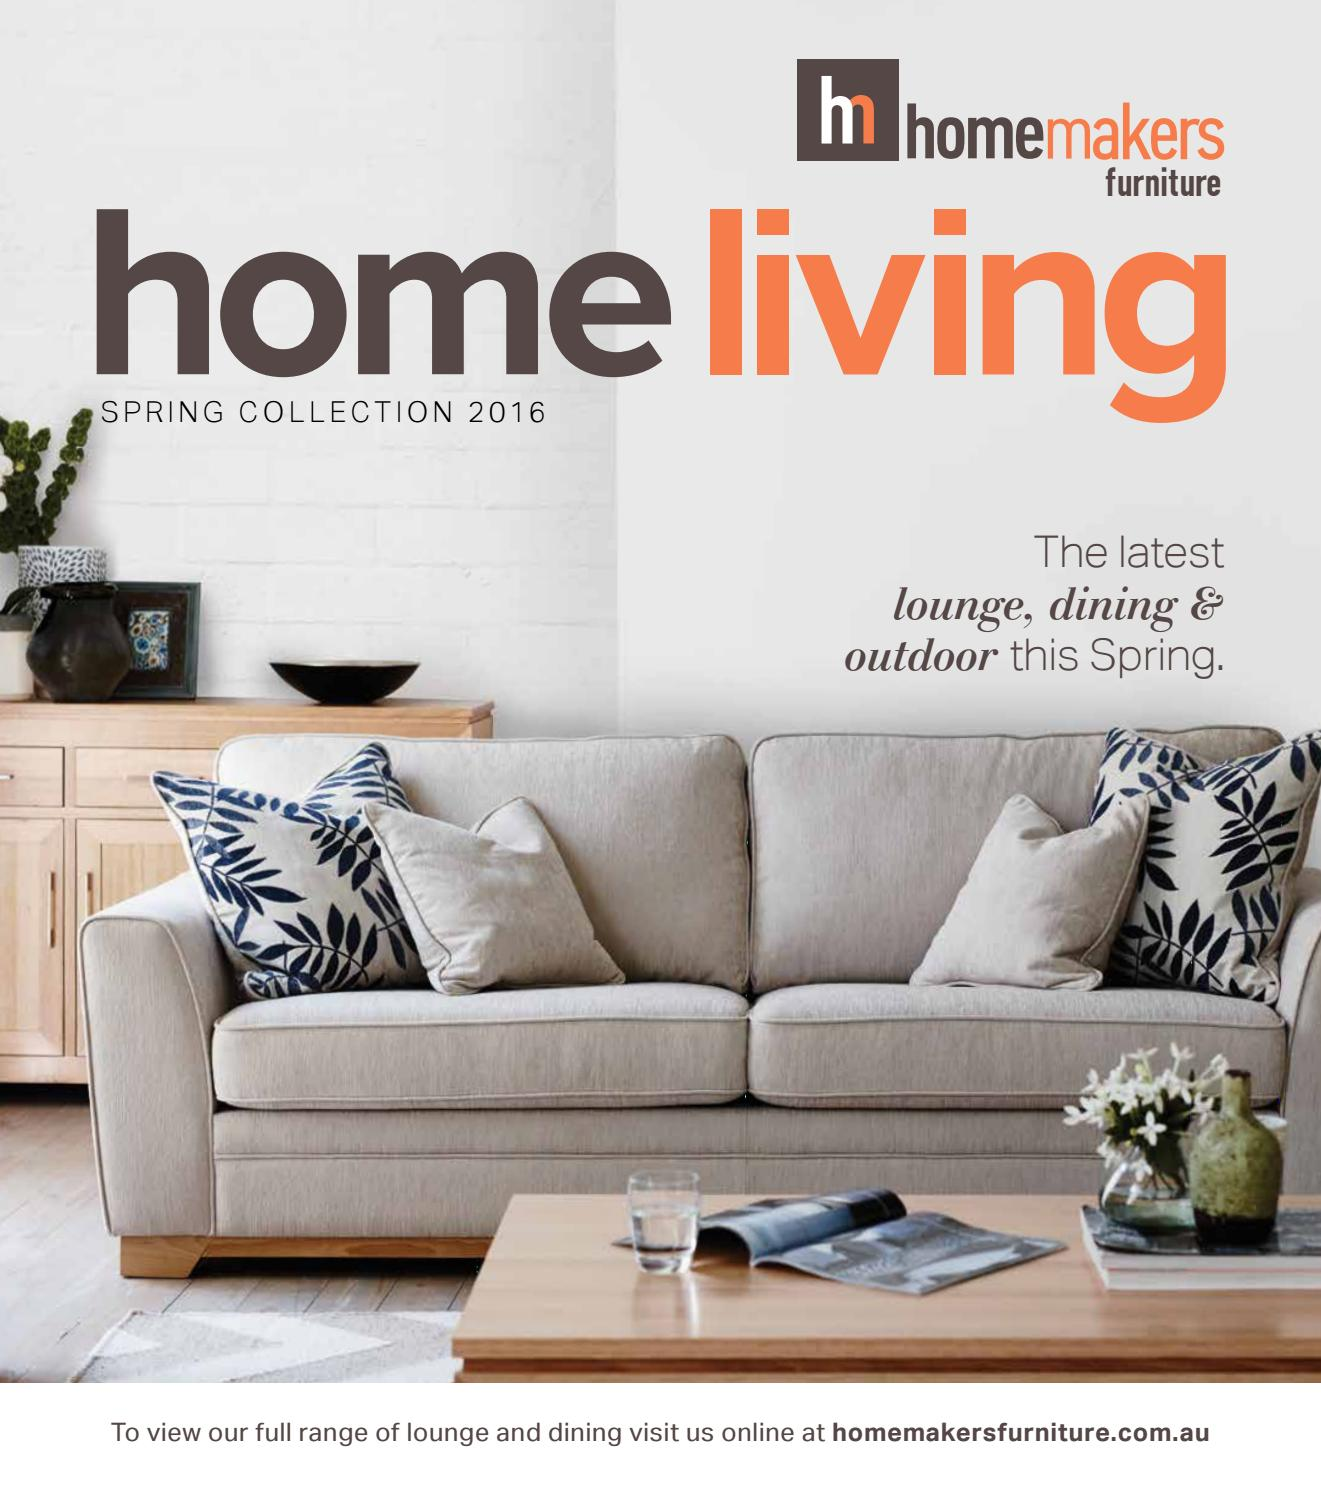 Homemakers spring home living catalogue vic by homemakers furniture issuu